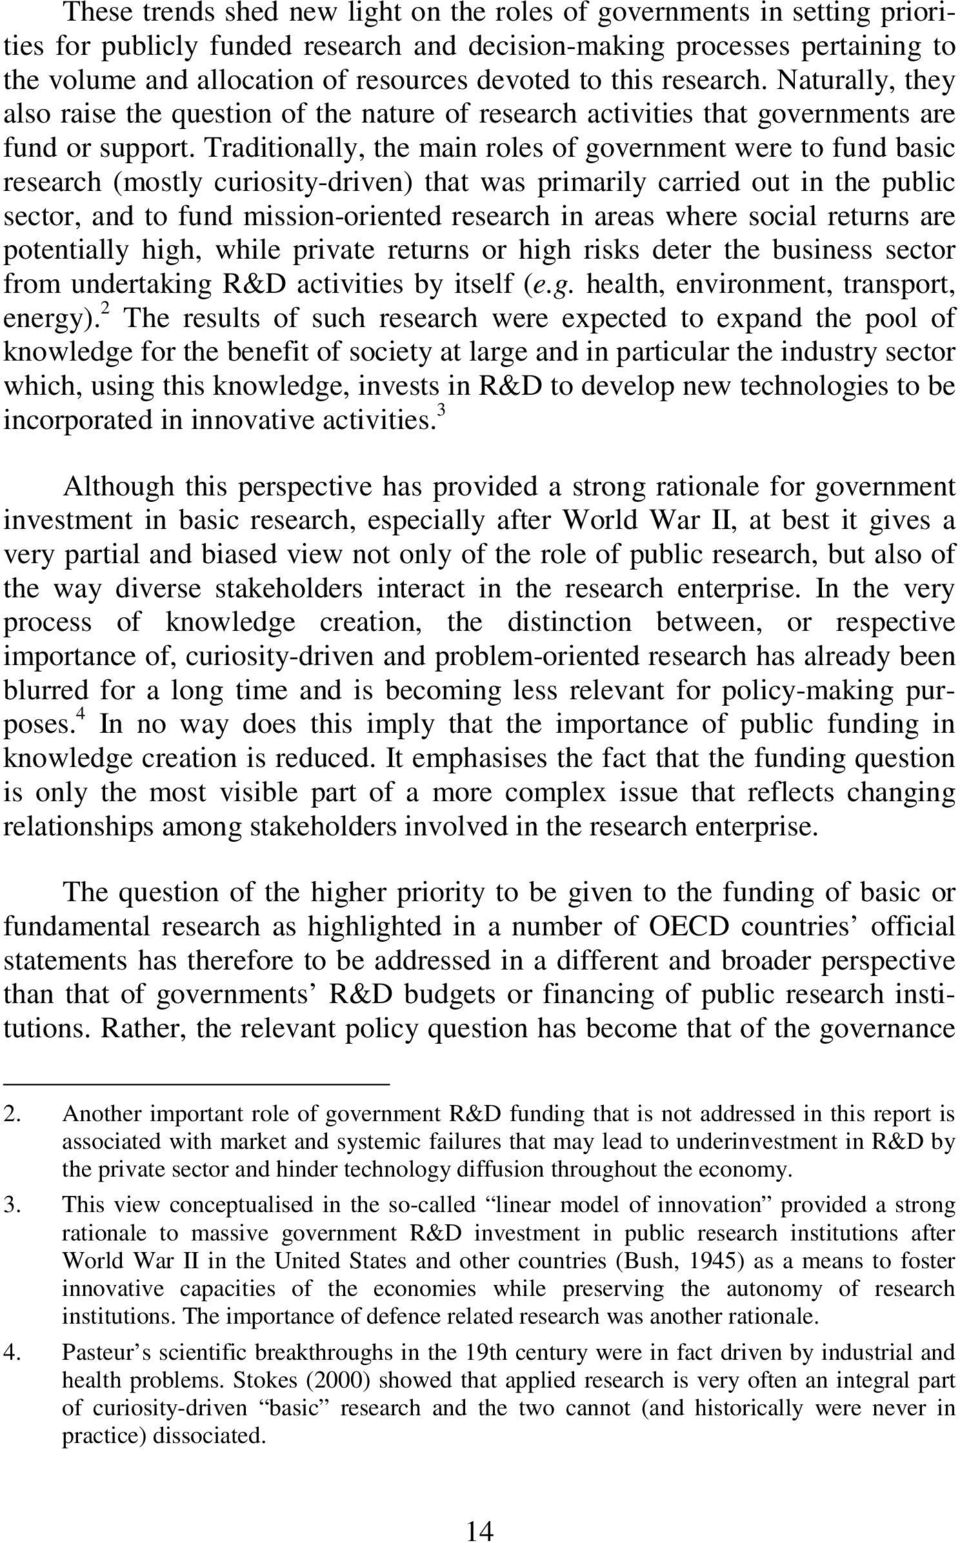 Traditionally, the main roles of government were to fund basic research (mostly curiosity-driven) that was primarily carried out in the public sector, and to fund mission-oriented research in areas